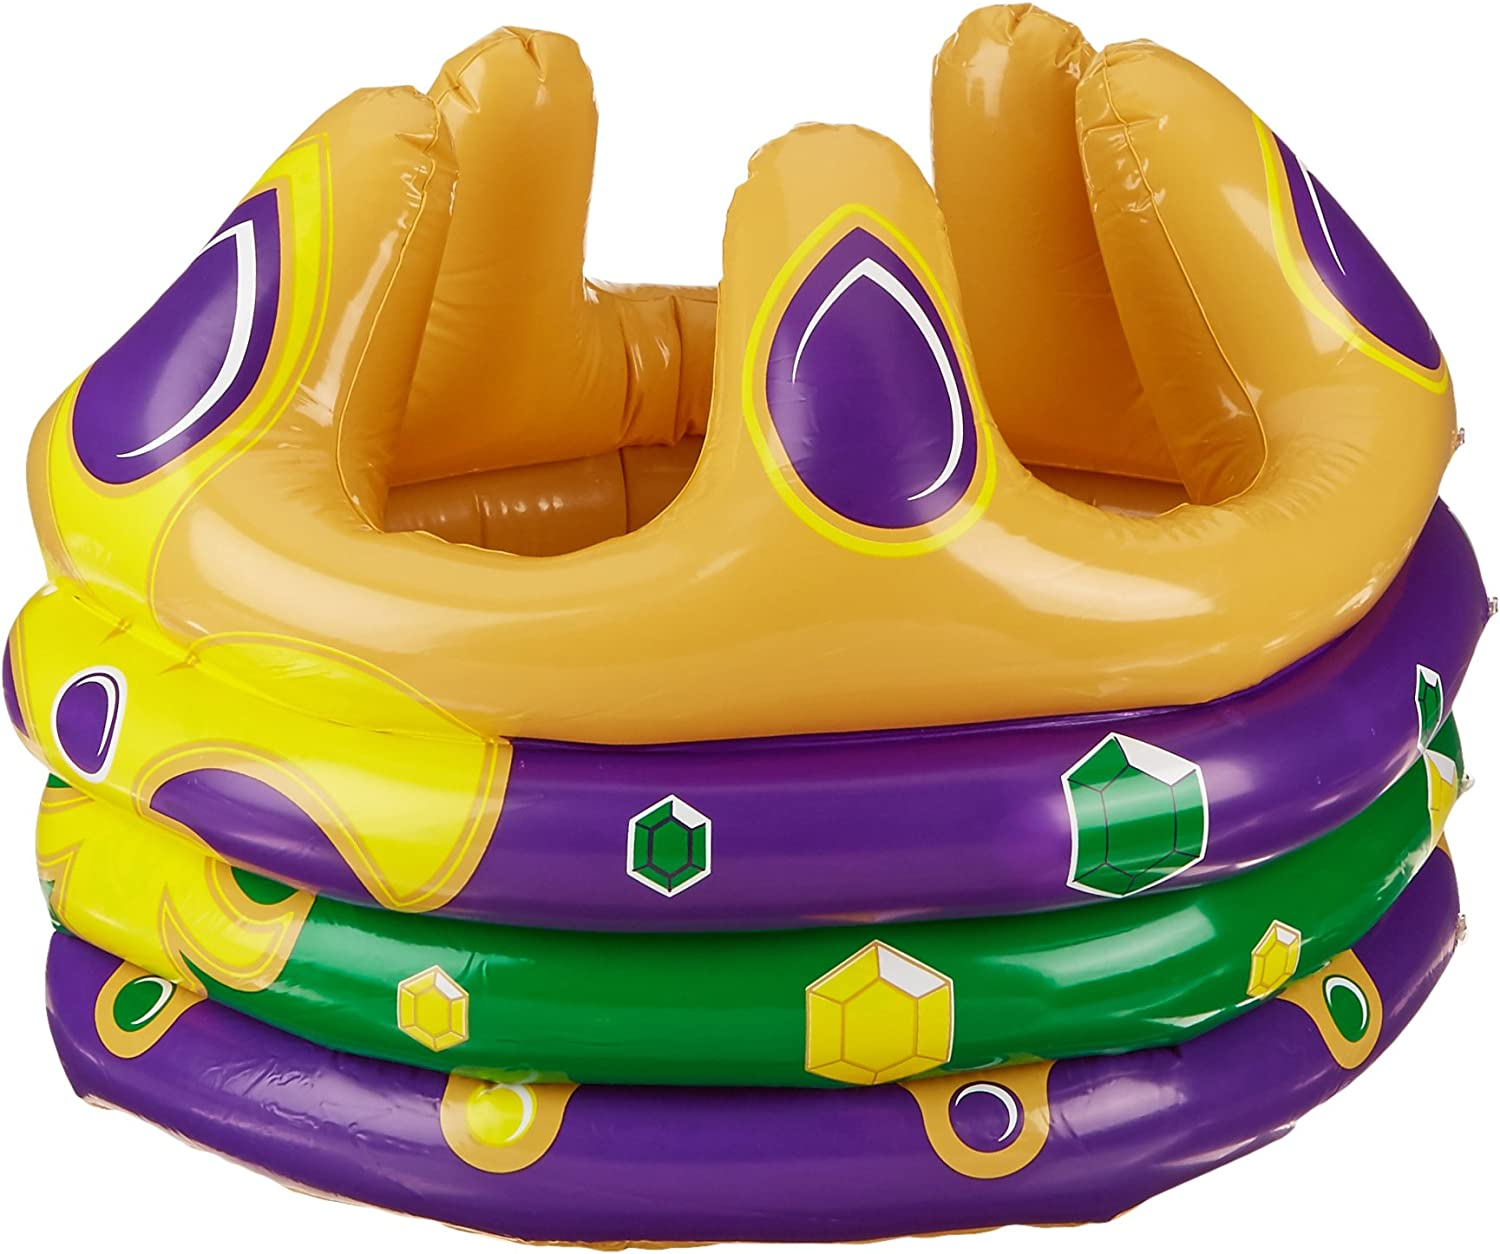 Beistle Inflatable Crown Cooler, 24-Inch Width by 18-Inch Height